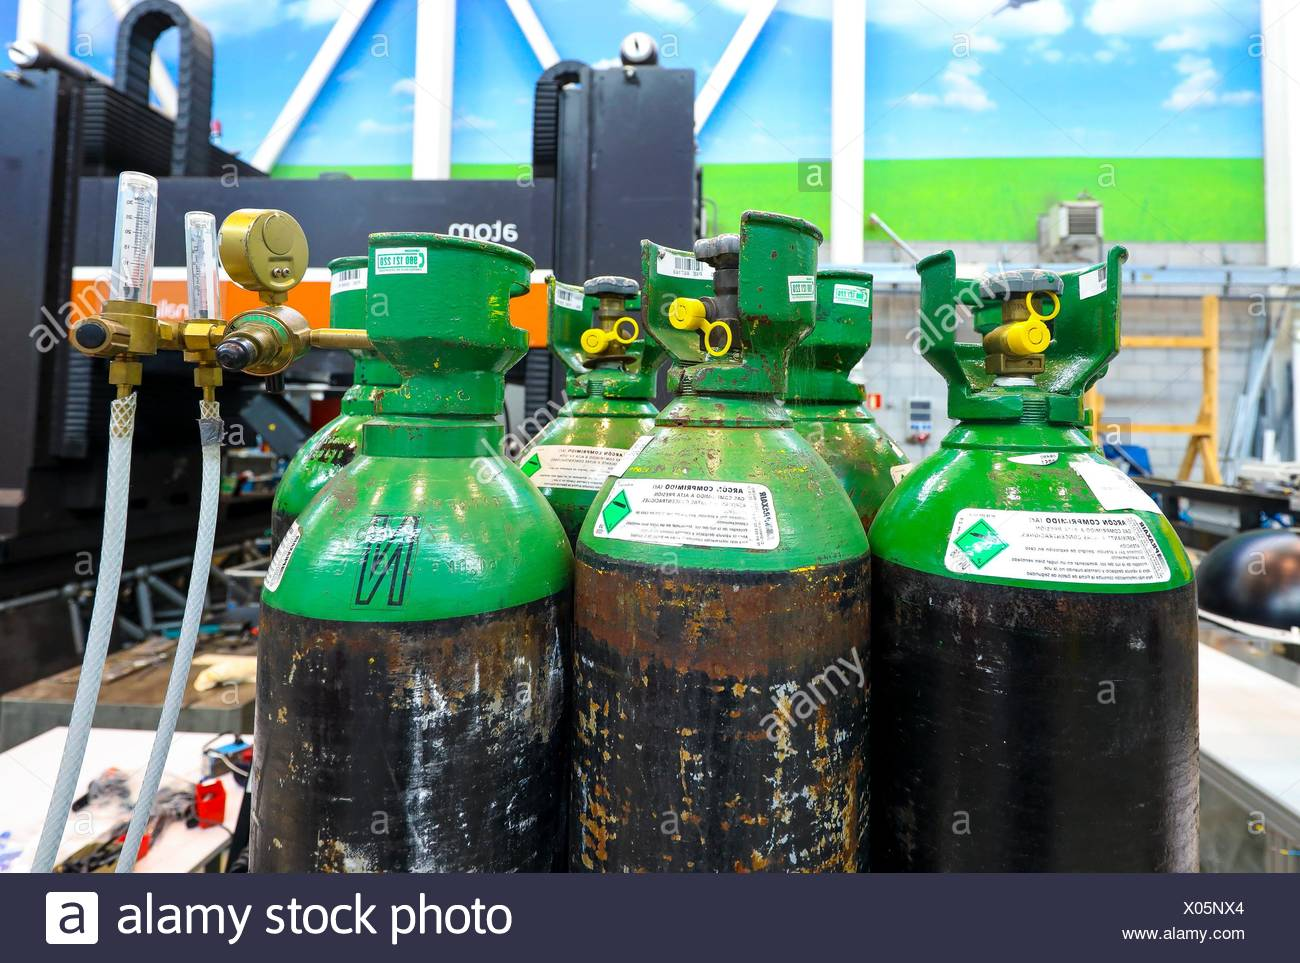 Tanks for compressed gas at high pressure, Argon compressed, Industry, Tecnalia Research & innovation, Technology and Research Centre, Miramon - Stock Image